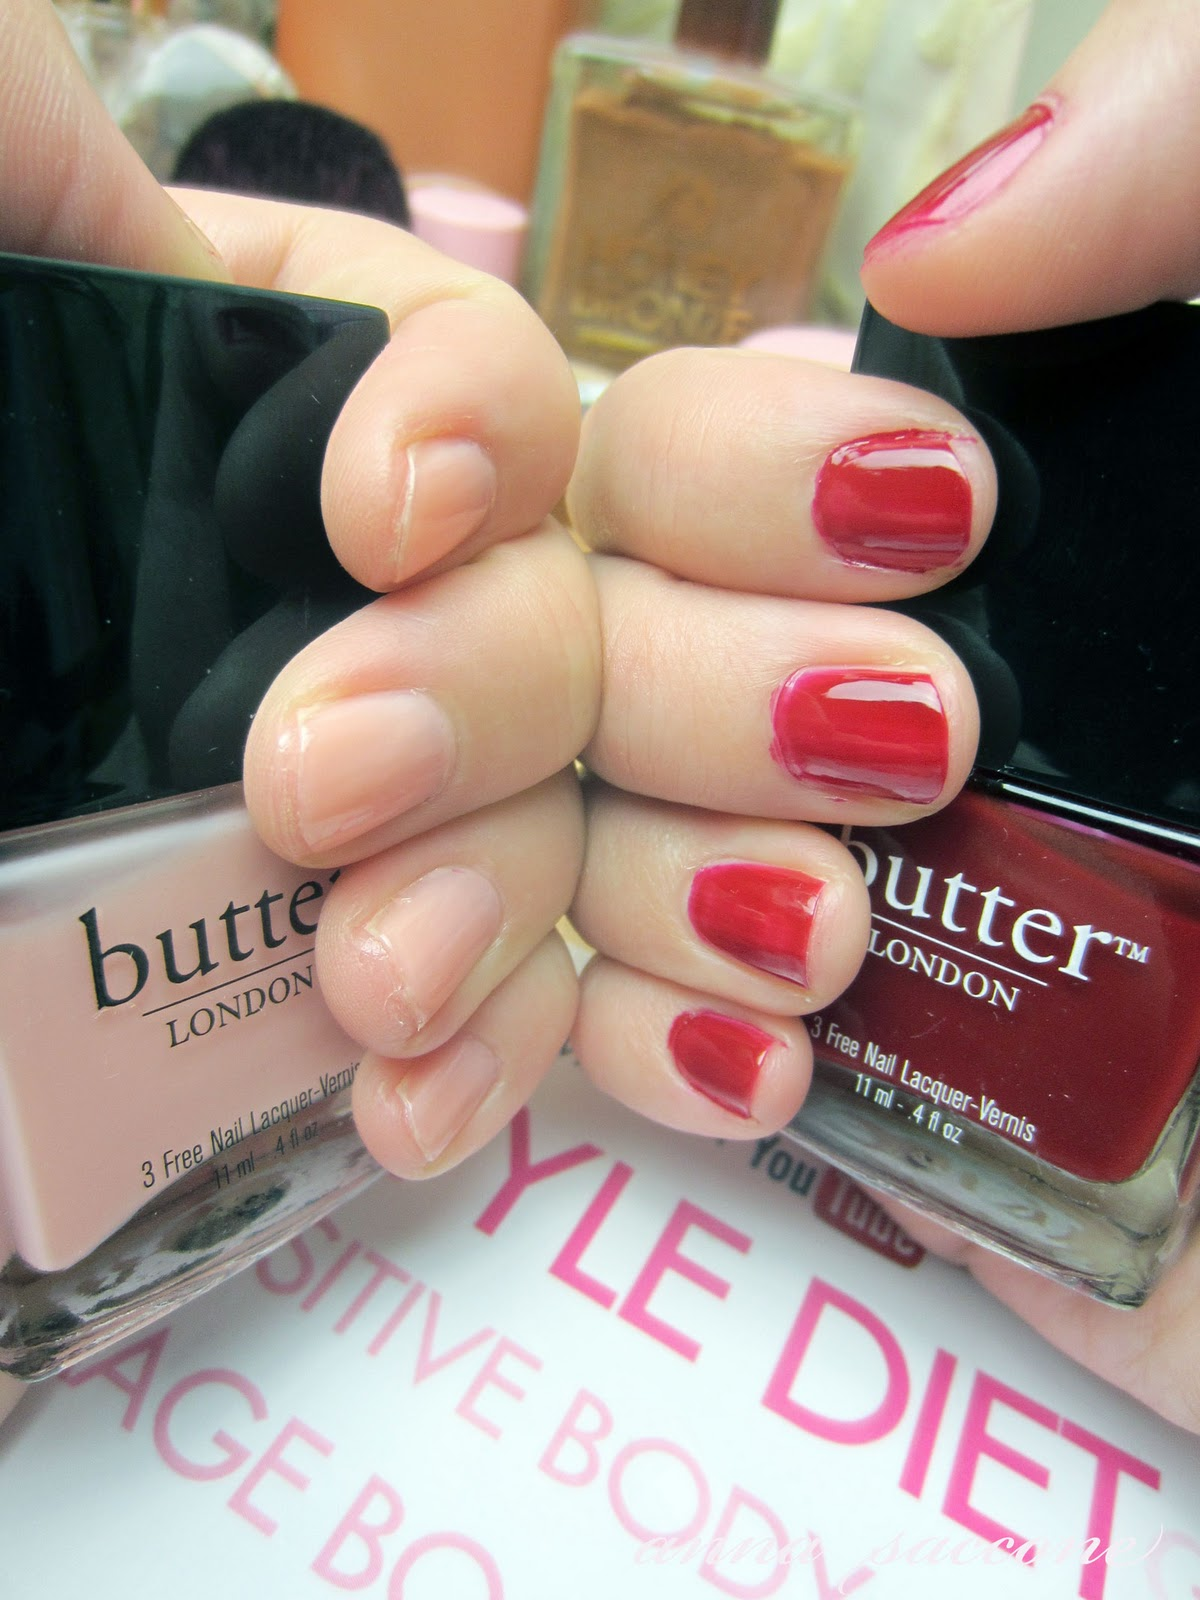 Butter London Nail Polish Pregnancy - Absolute cycle